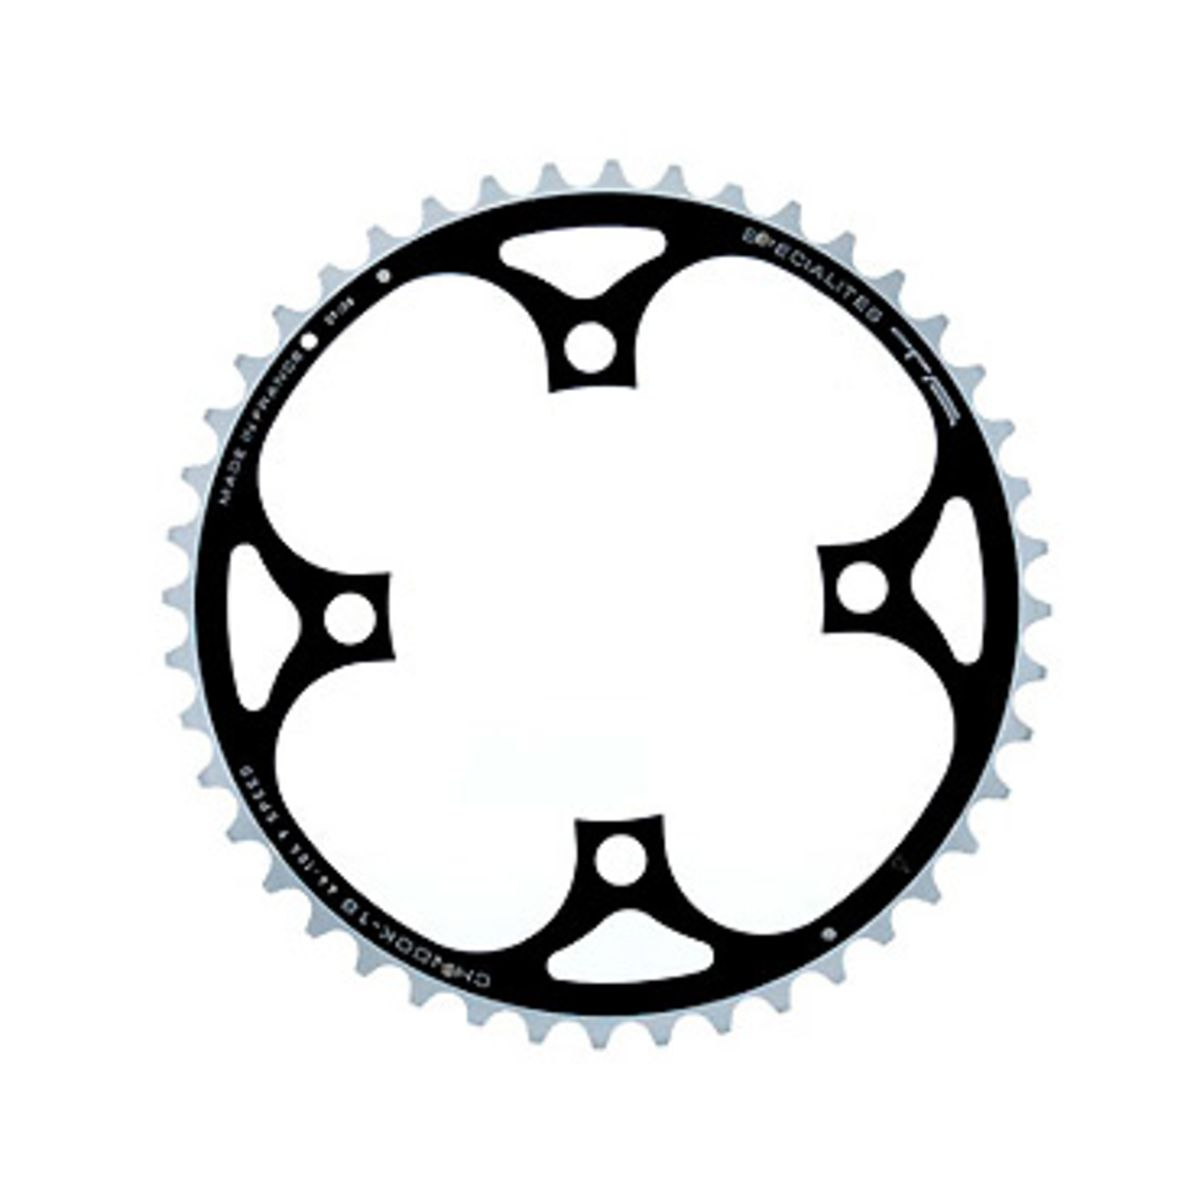 TA Chinook 9-speed 44-tooth chainring | Klinger